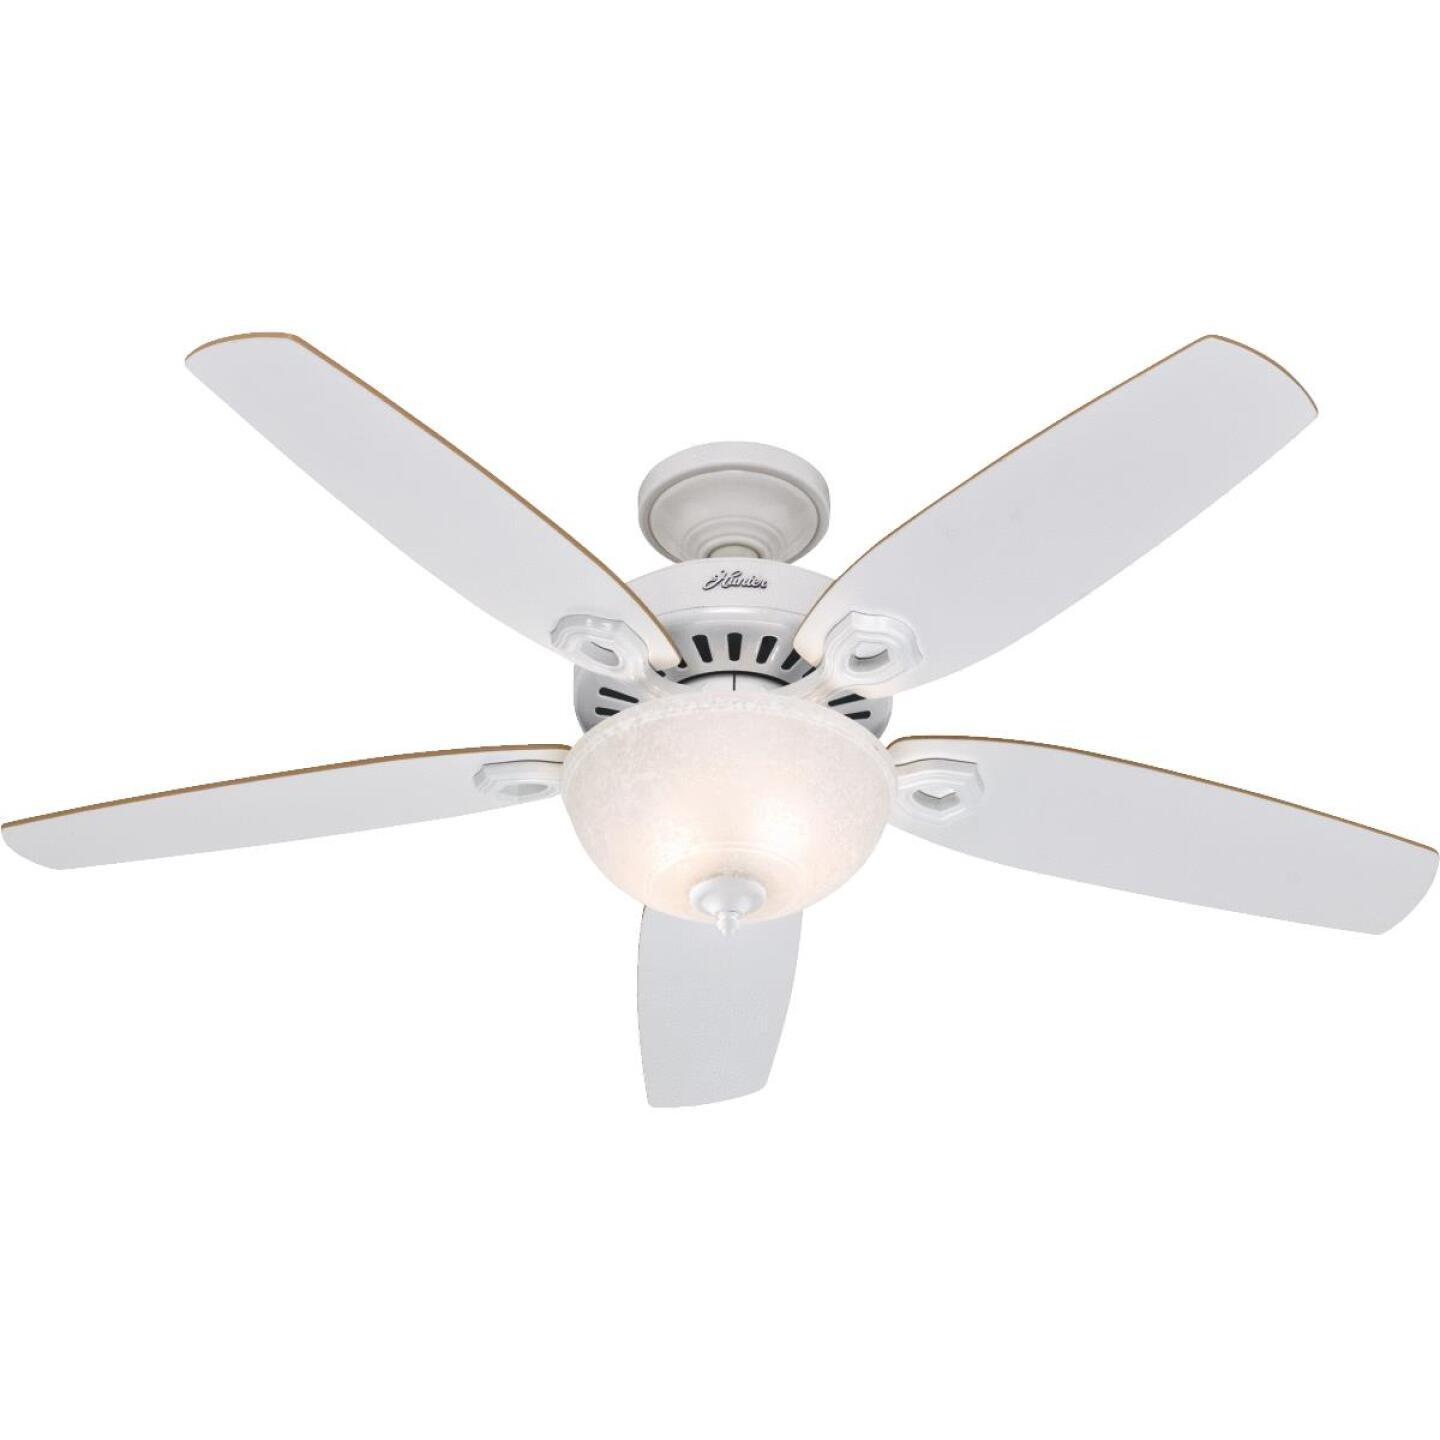 Hunter Builder Deluxe 52 In. White Ceiling Fan with Light Kit Image 1